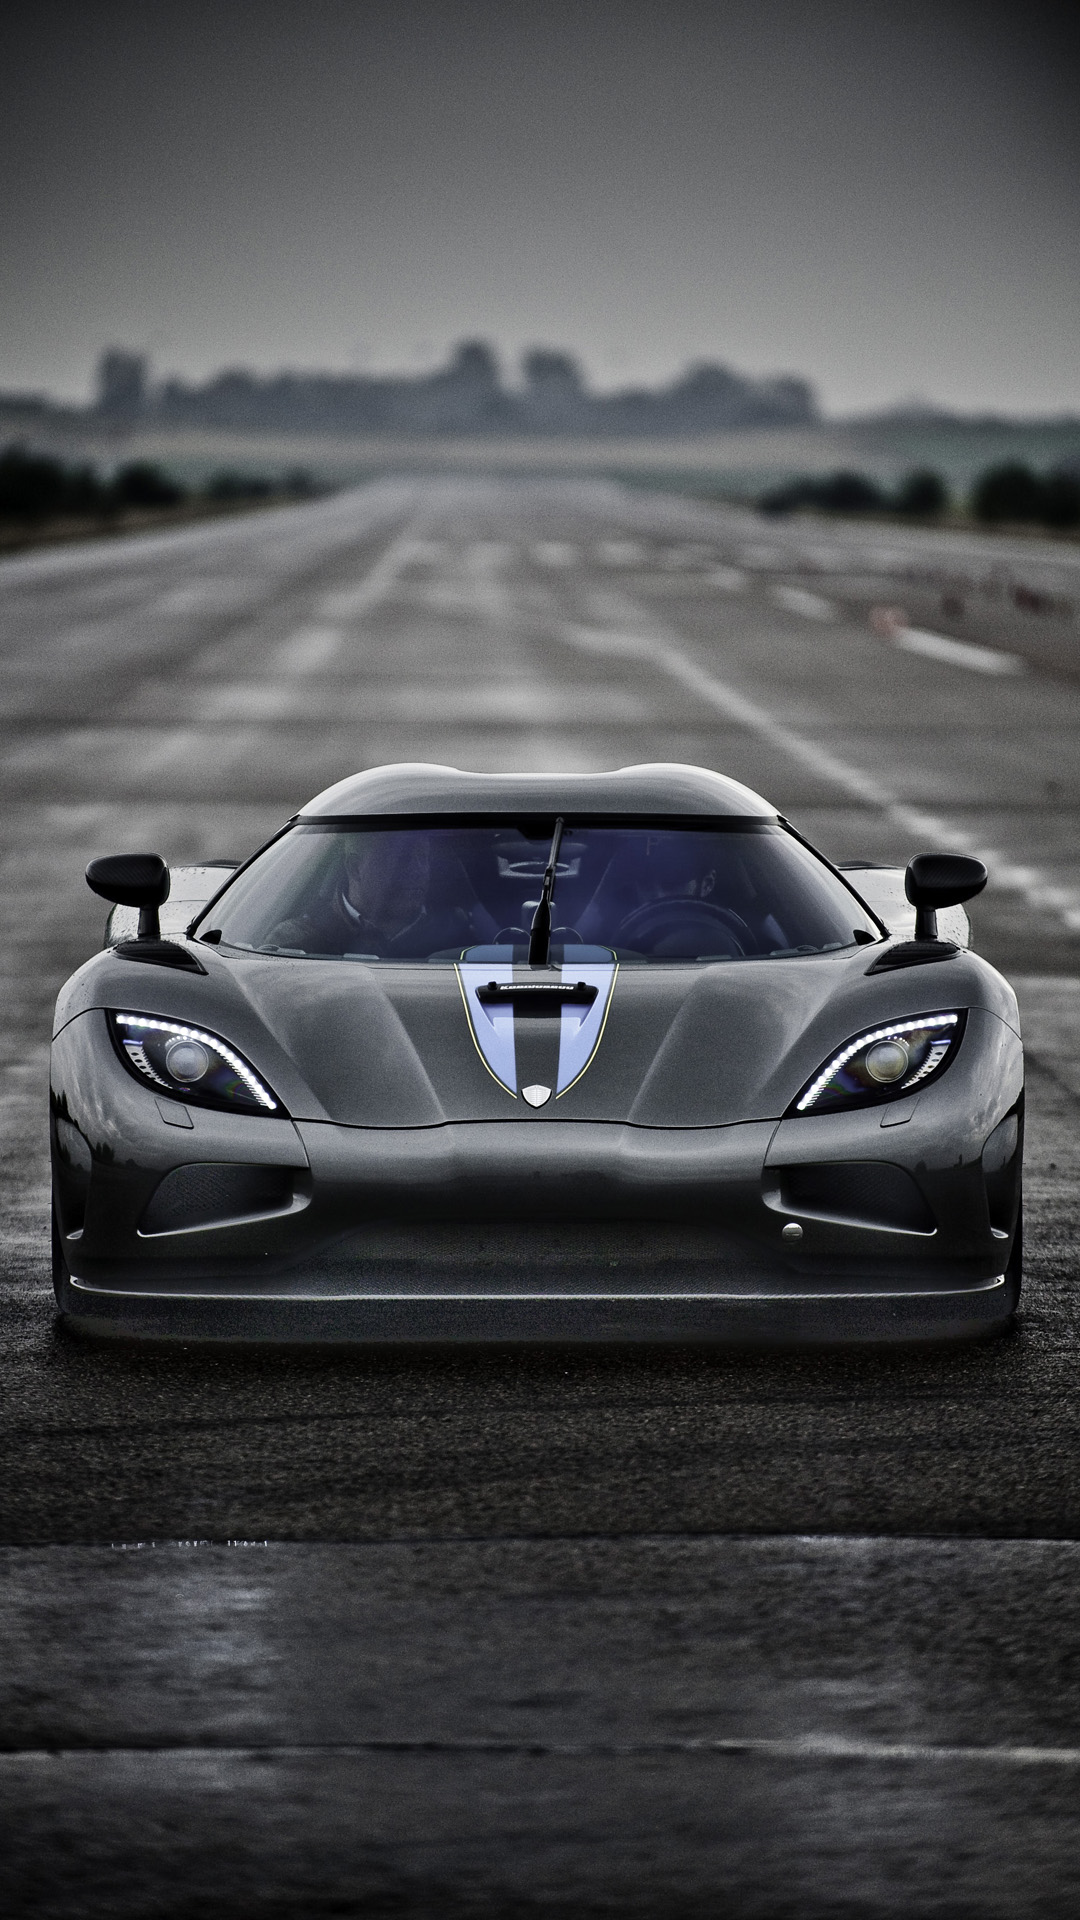 Koenigsegg CCXR BackUp Fire Abstract Car 2014 | El Tony